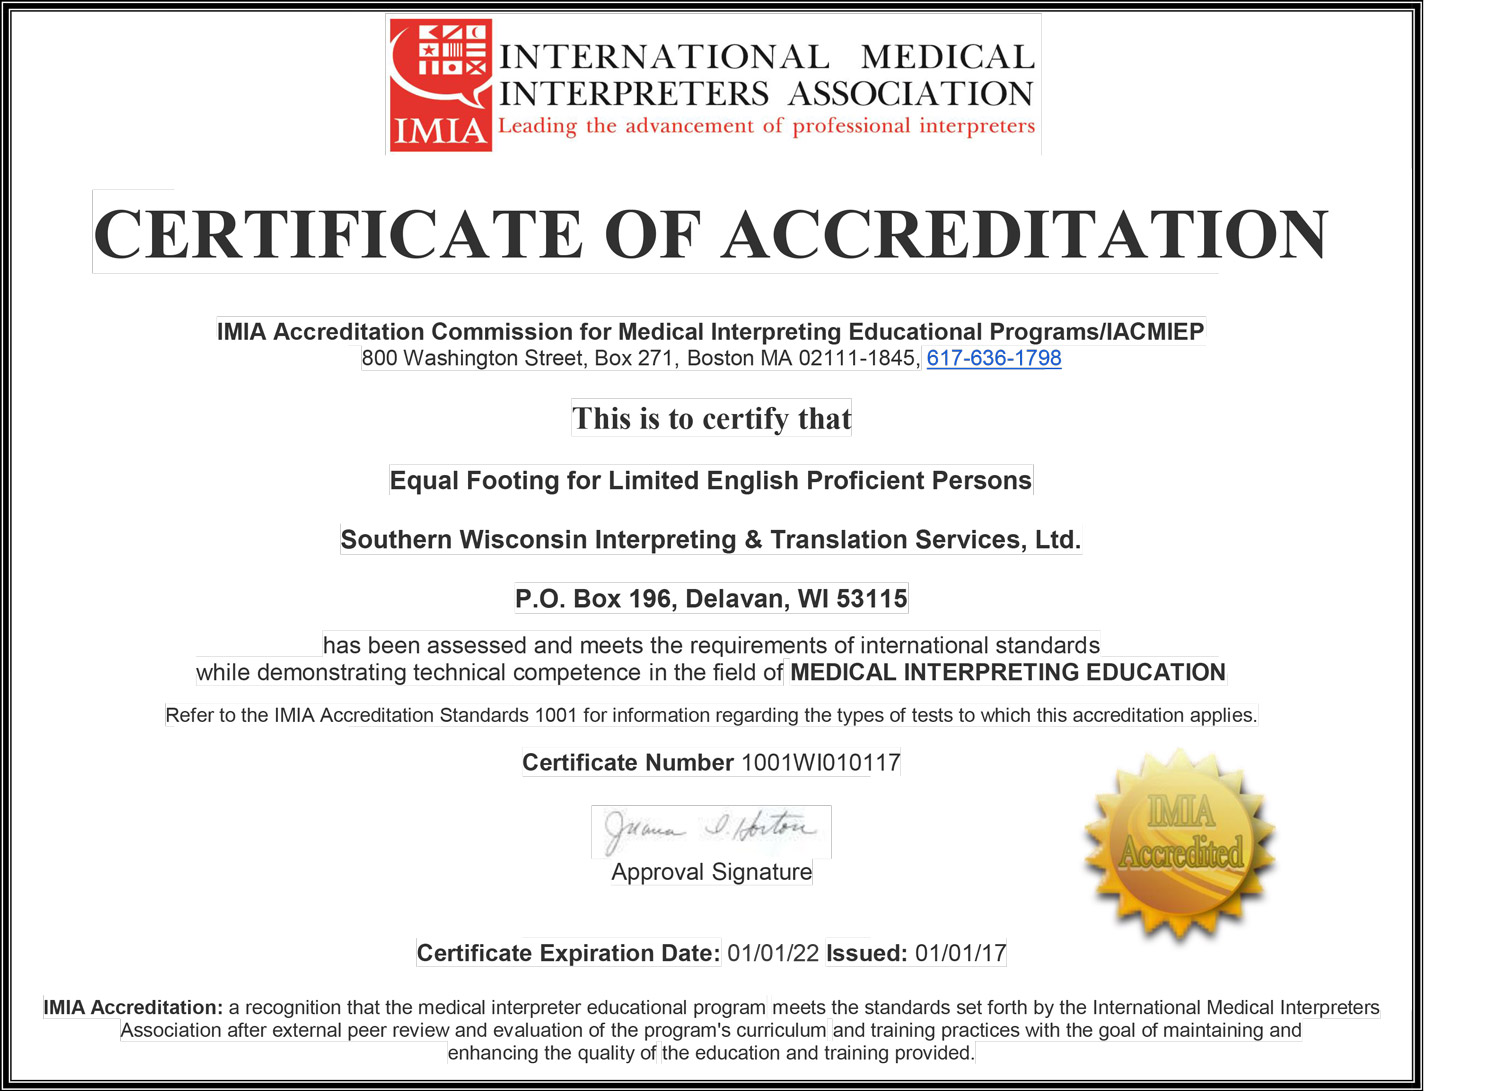 SWITS Certificate of Accreditation